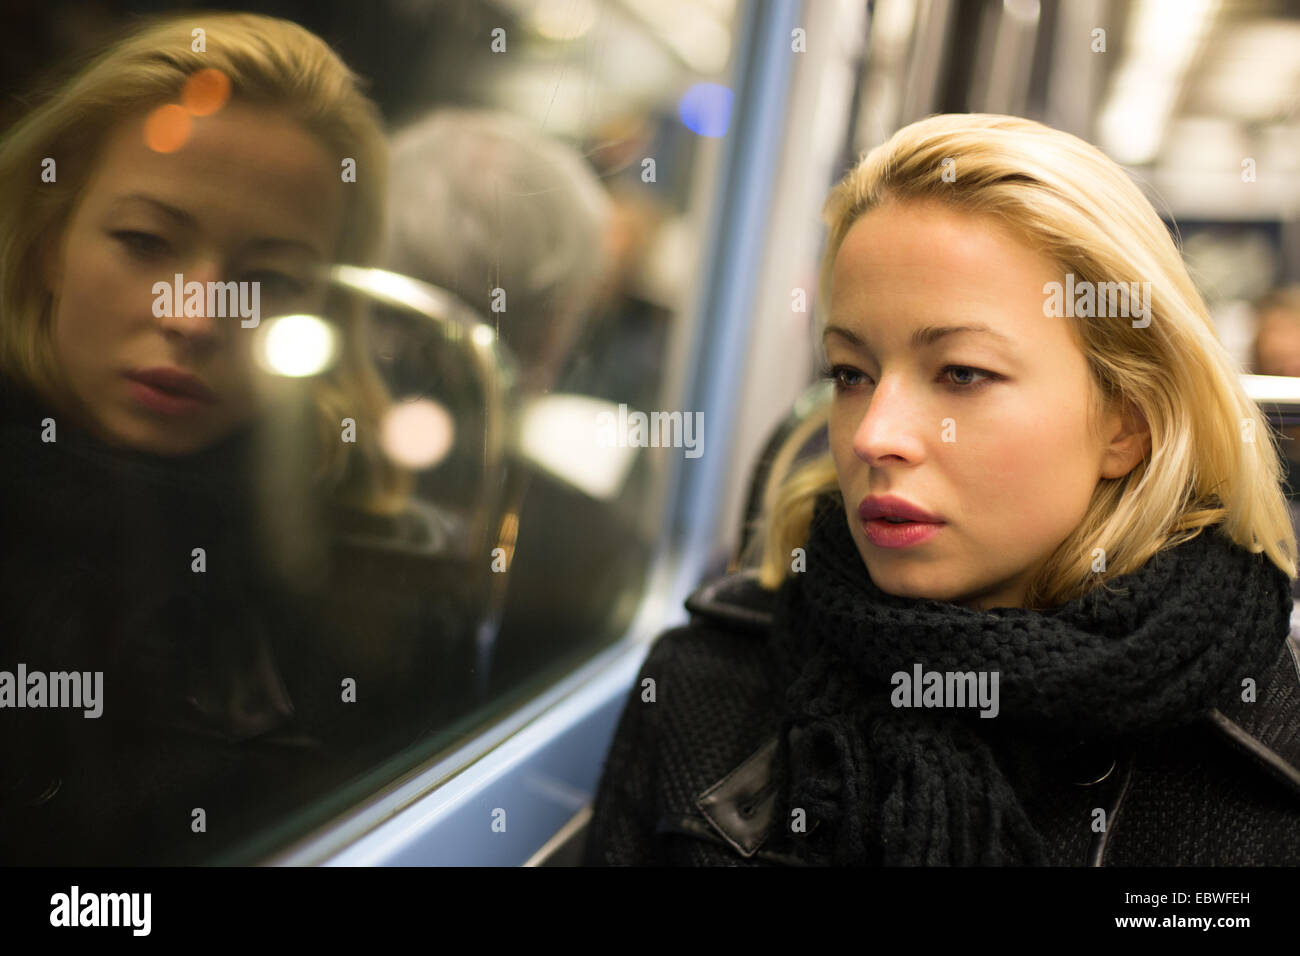 Woman looking out metro's window. - Stock Image